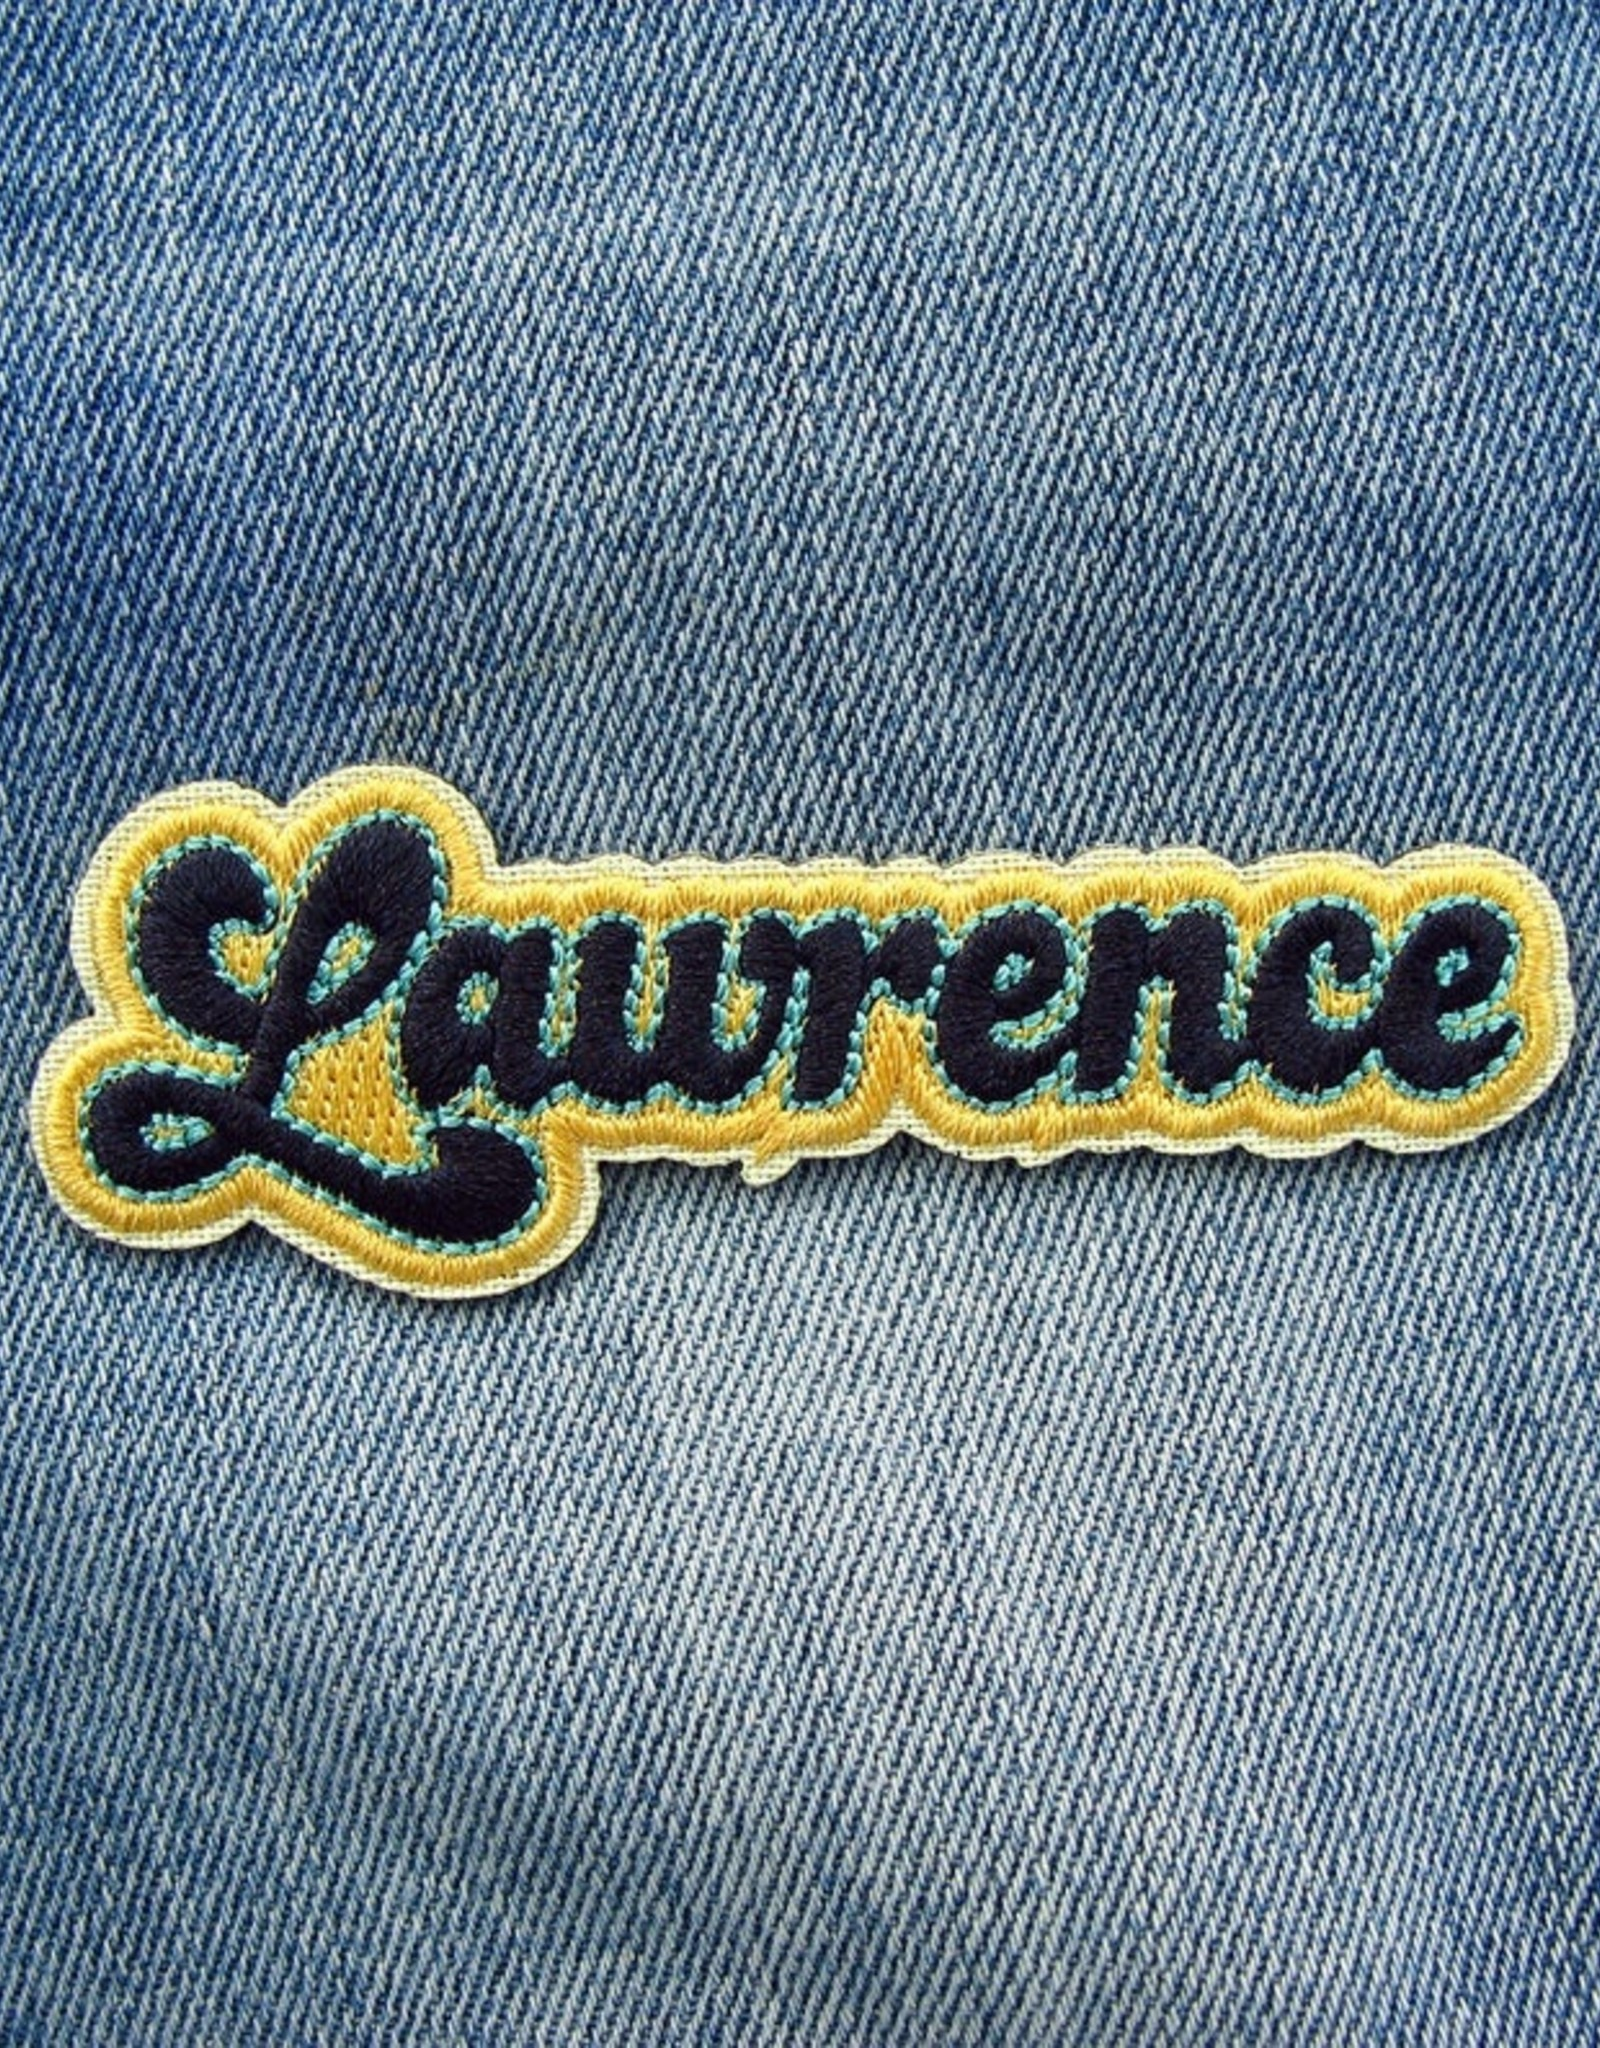 Emmi Murao Lawrence Patch by Emmi Murao